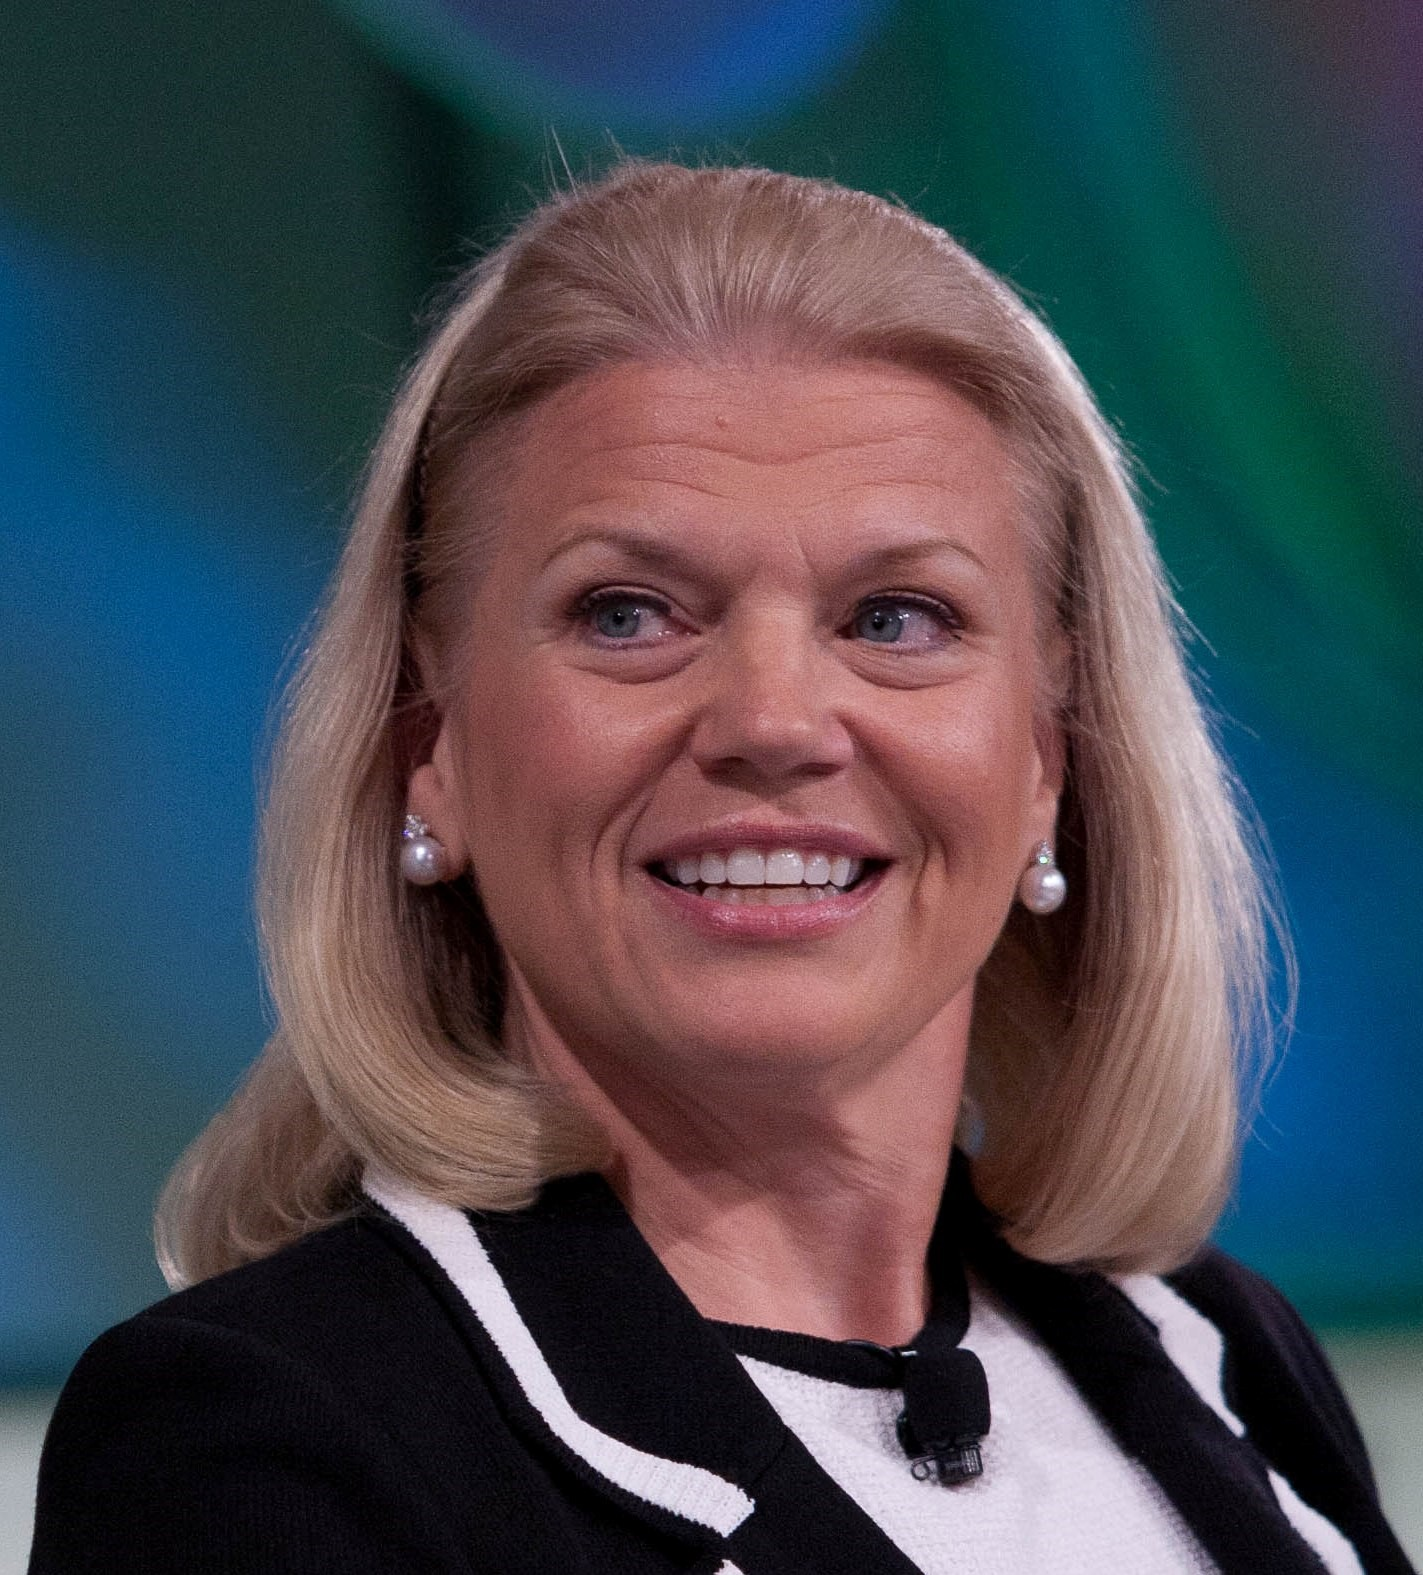 Ginni Rometty, CEO di IBM